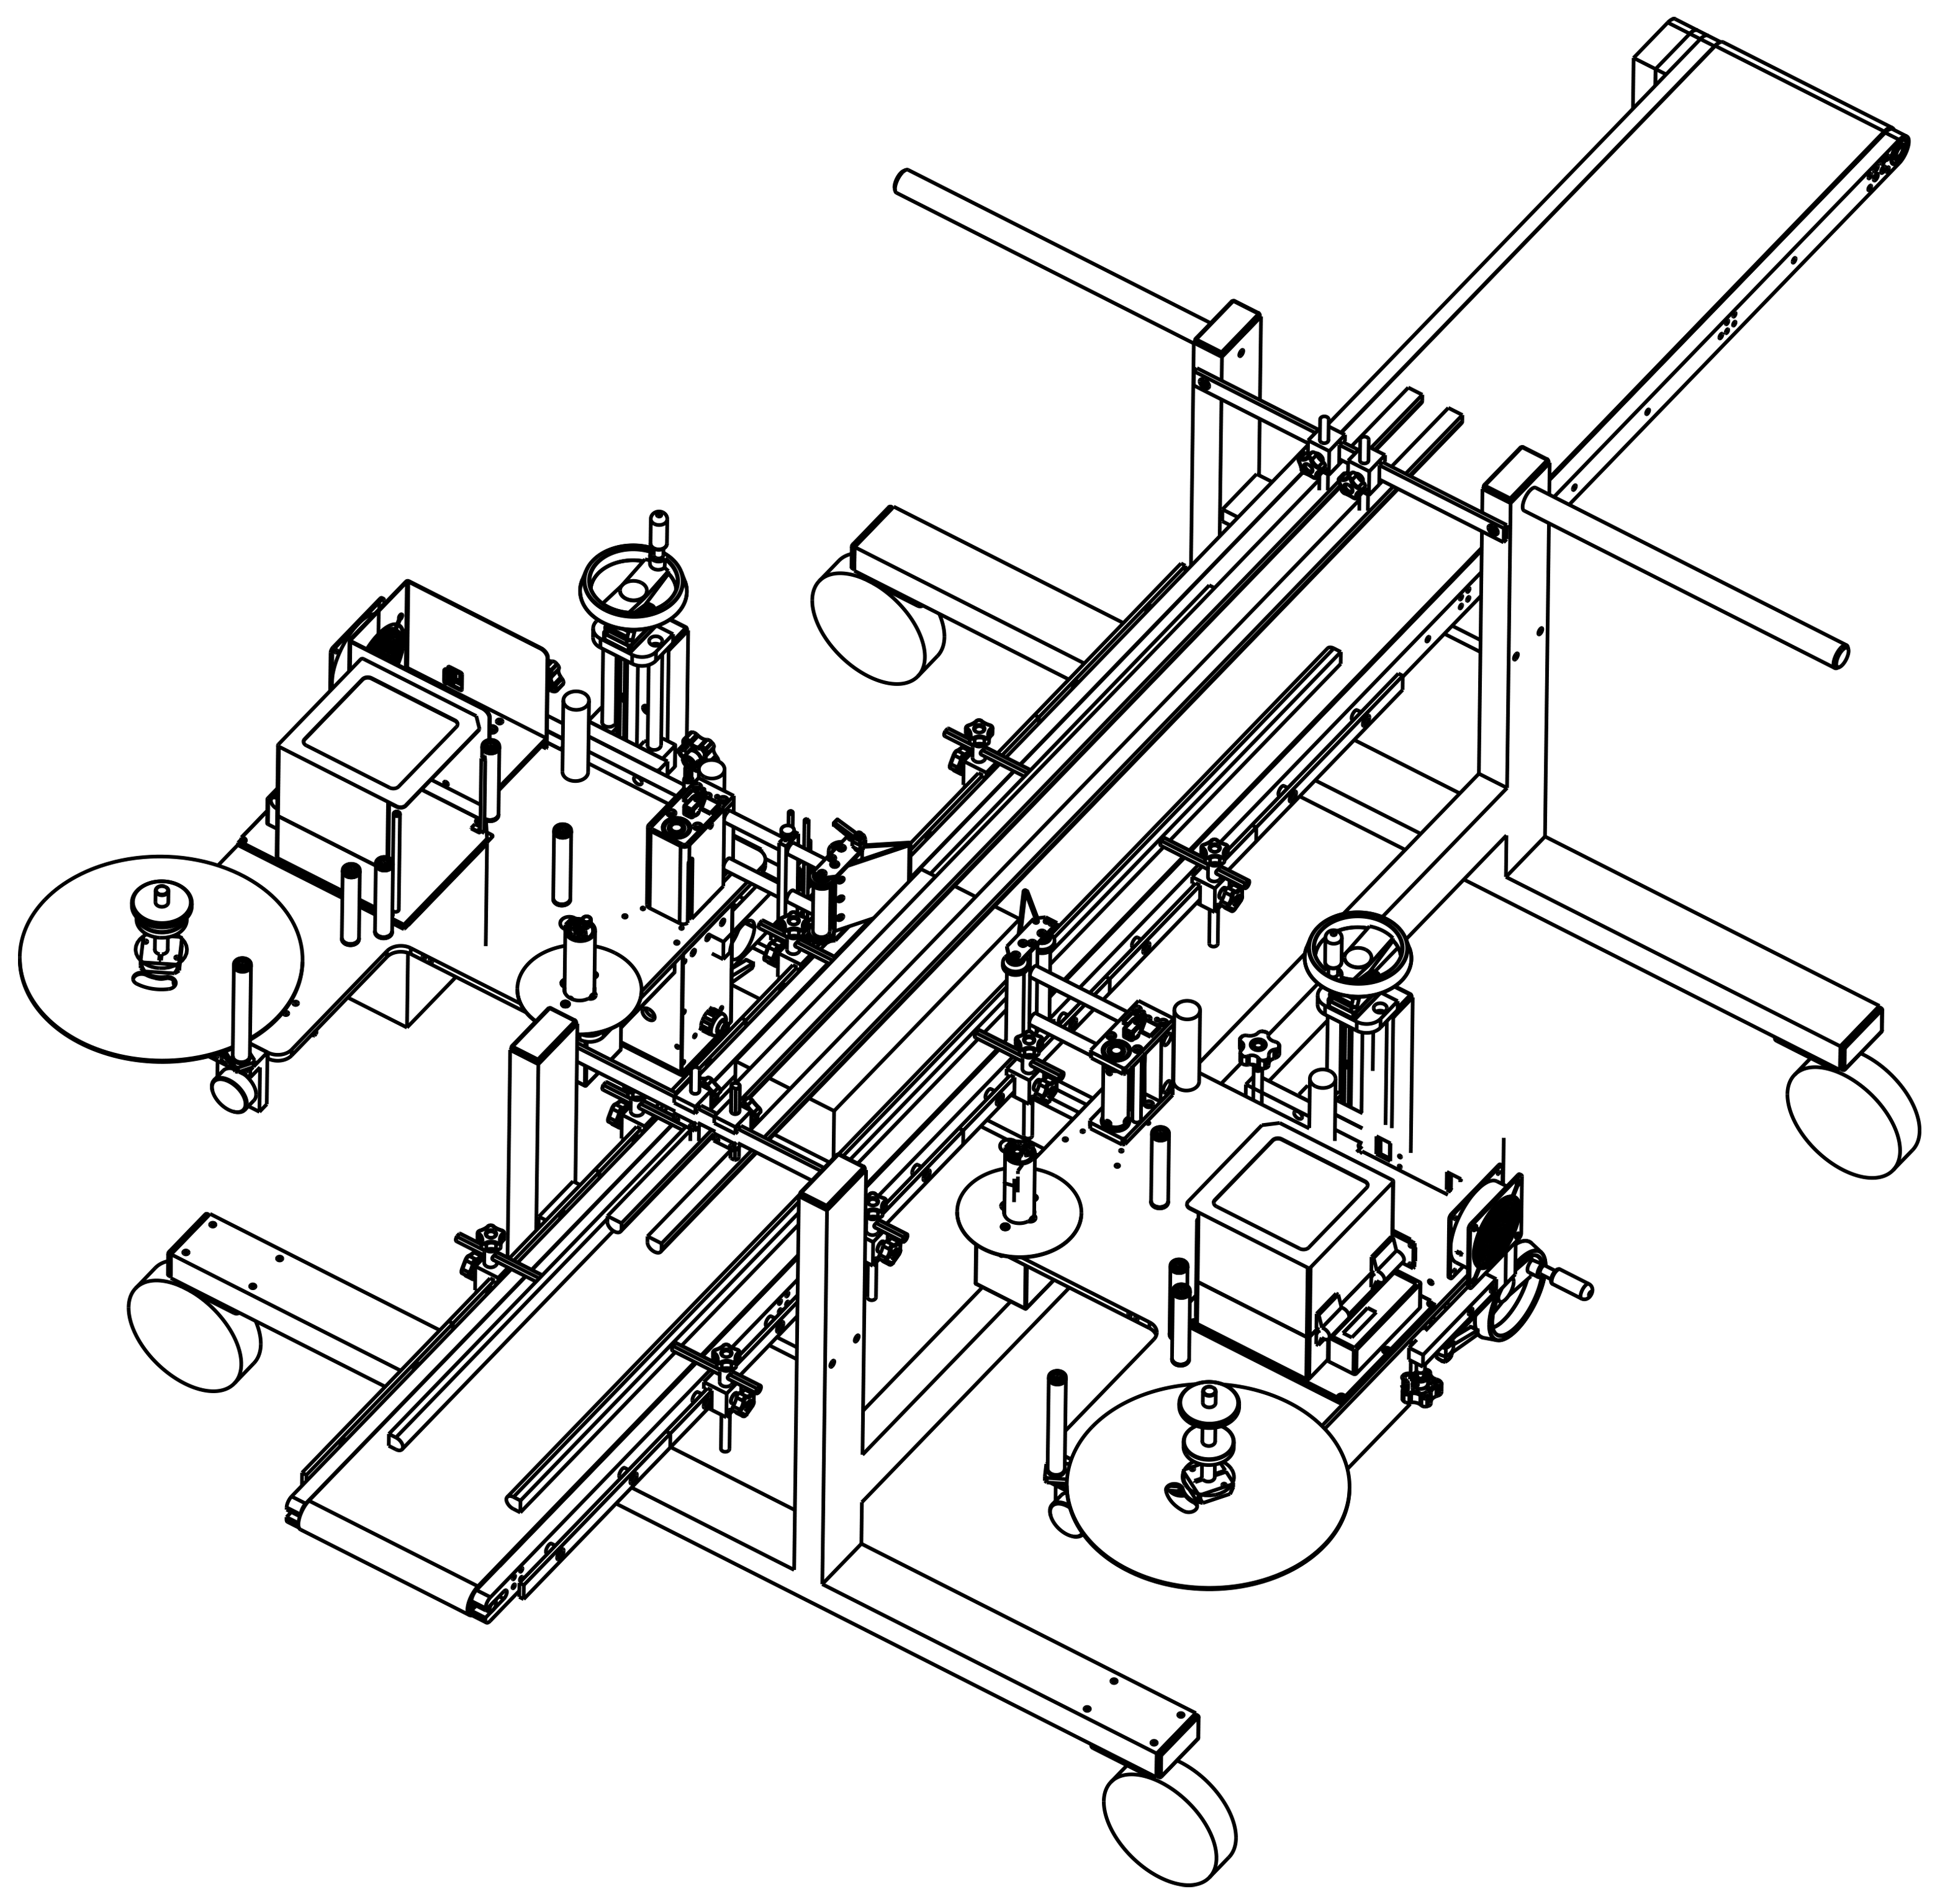 Line drawing of automated horticulture machinery